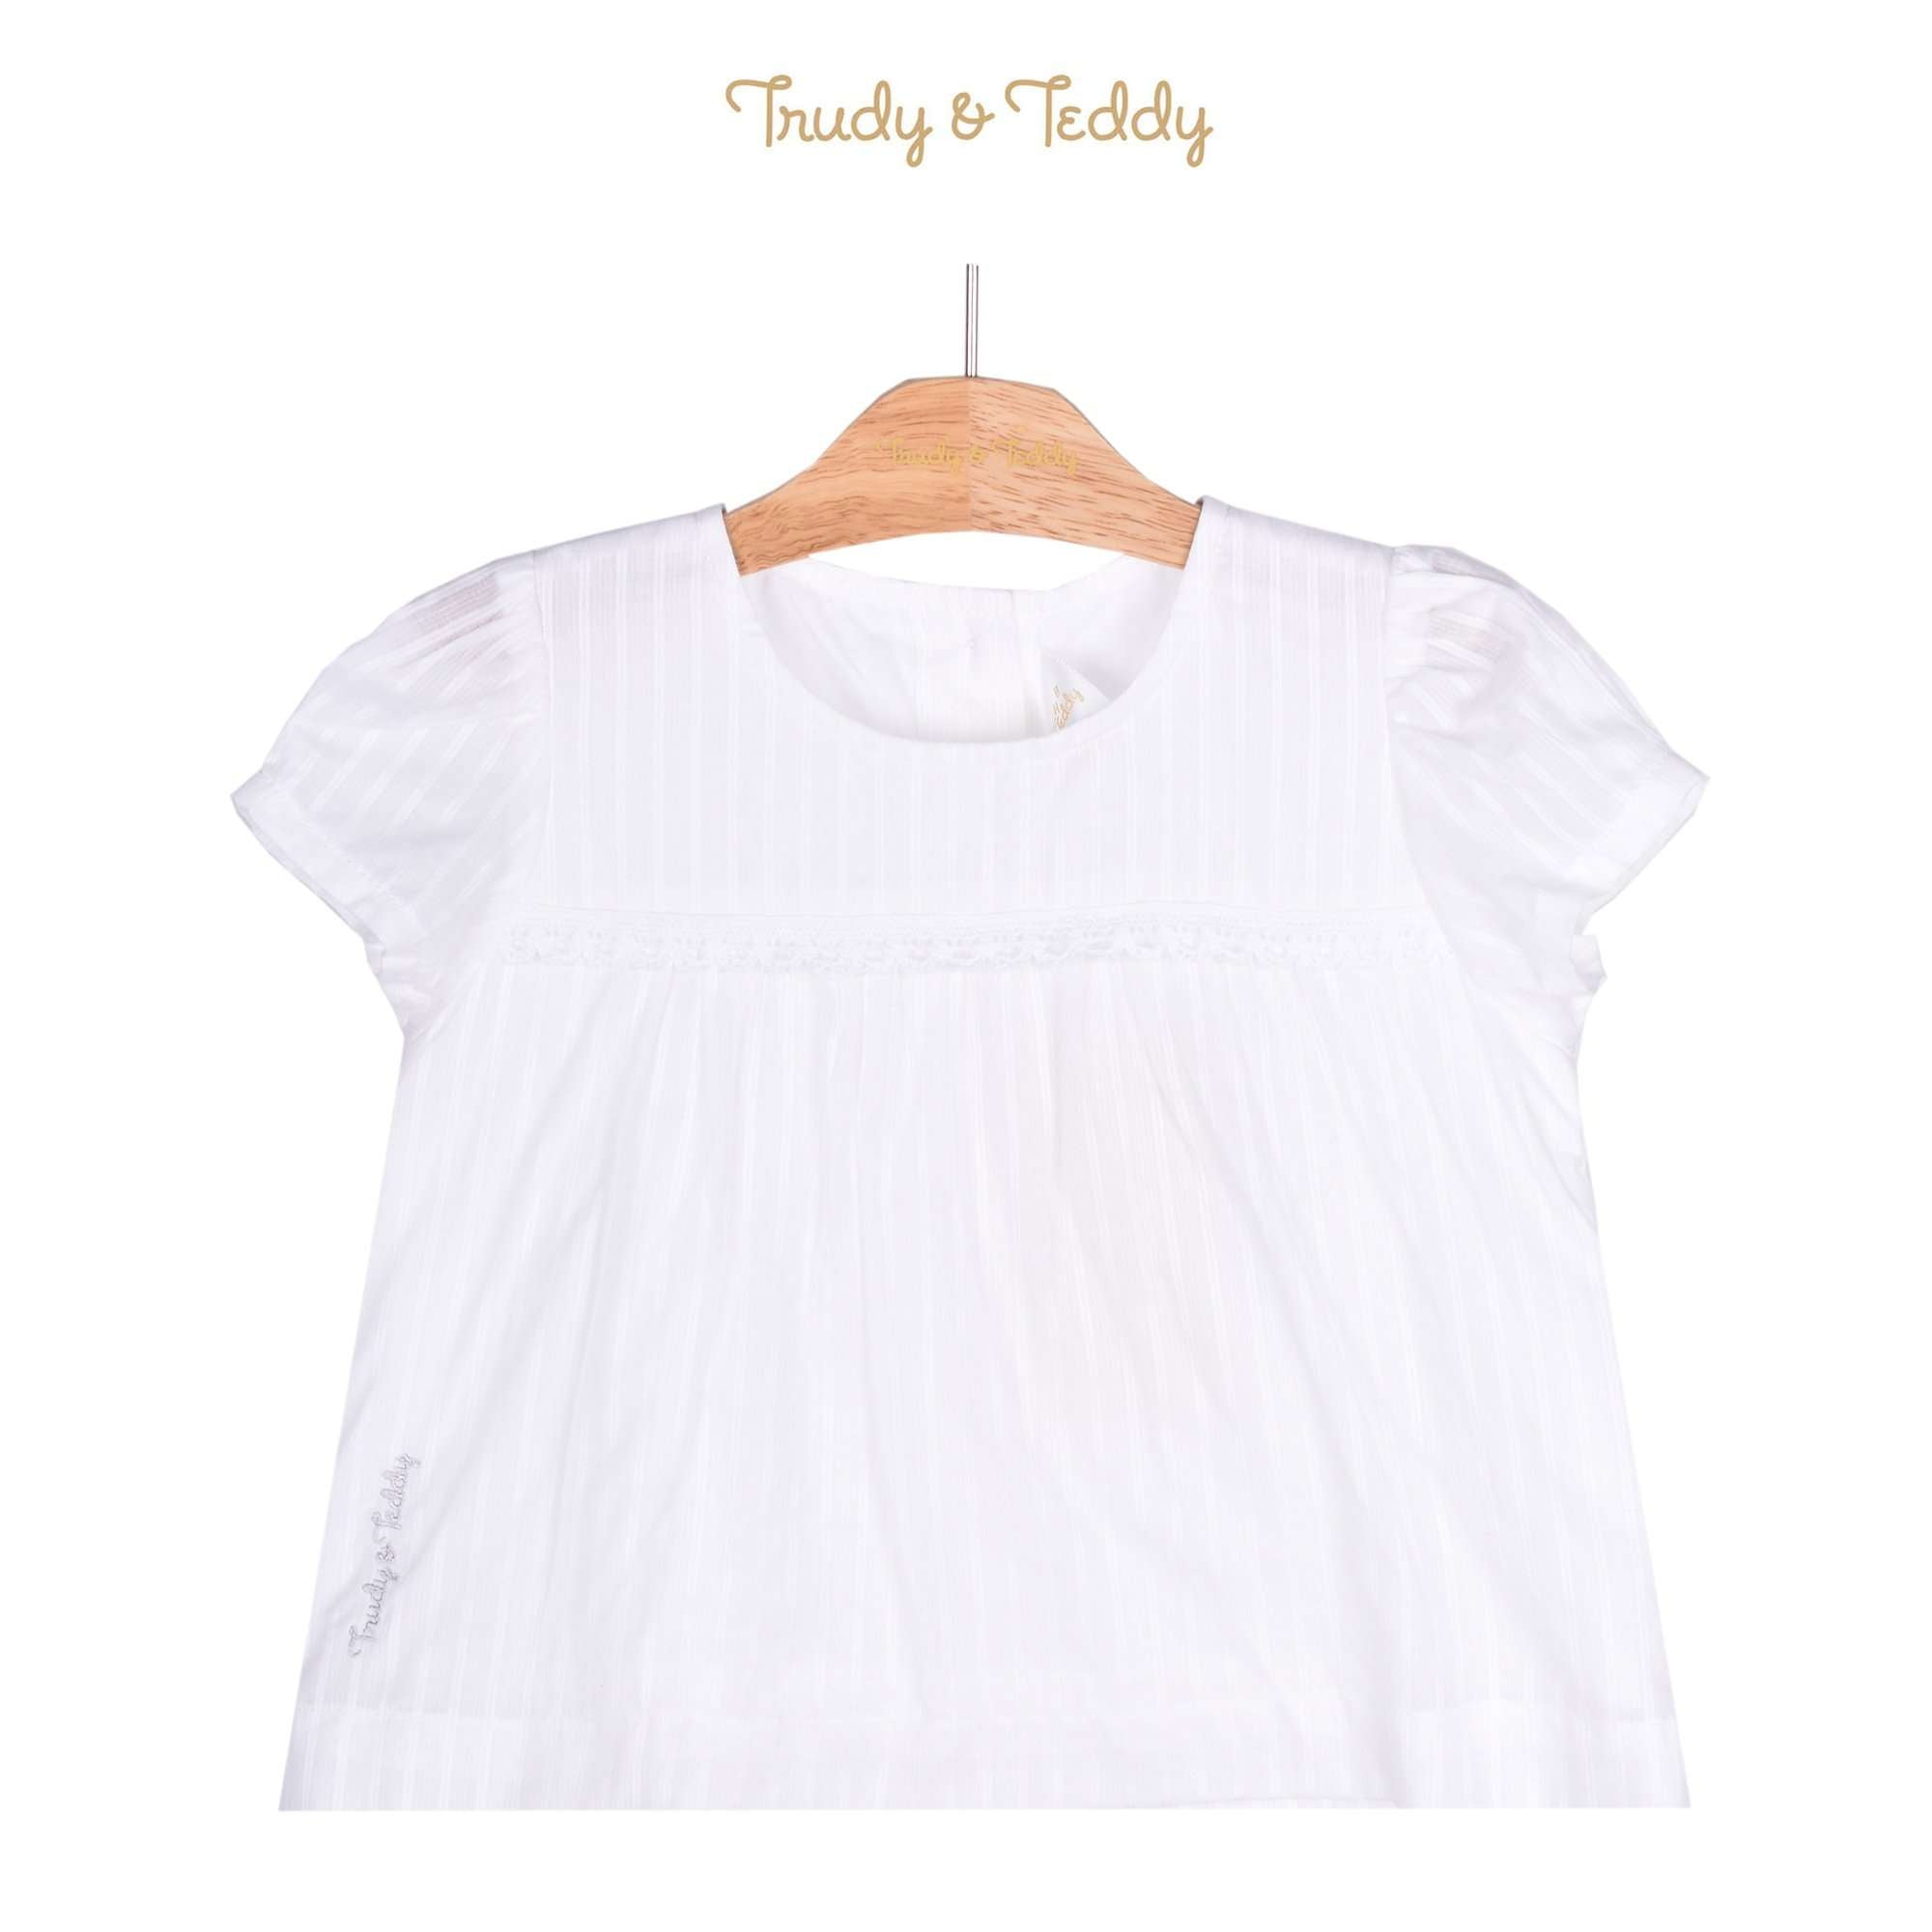 Trudy & Teddy Toddler Girl Short Sleeve Blouse 815143-141 : Buy Trudy & Teddy online at CMG.MY